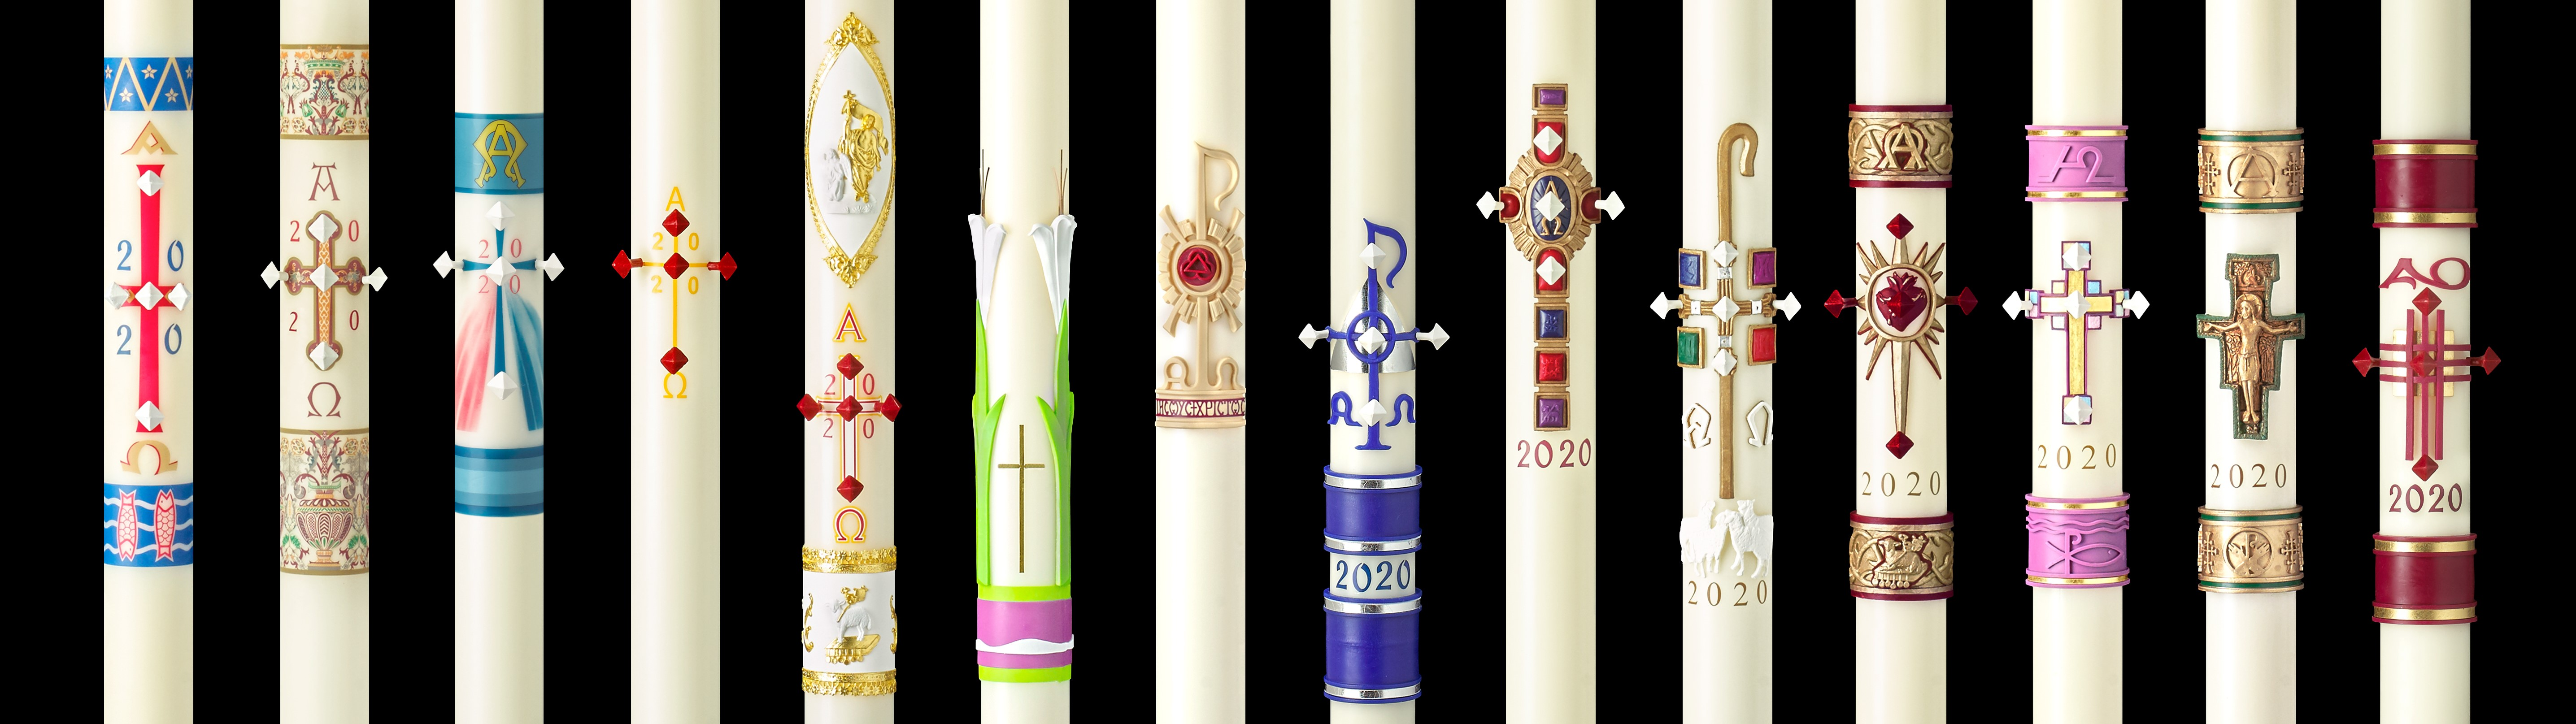 paschal-candle-selection.jpg